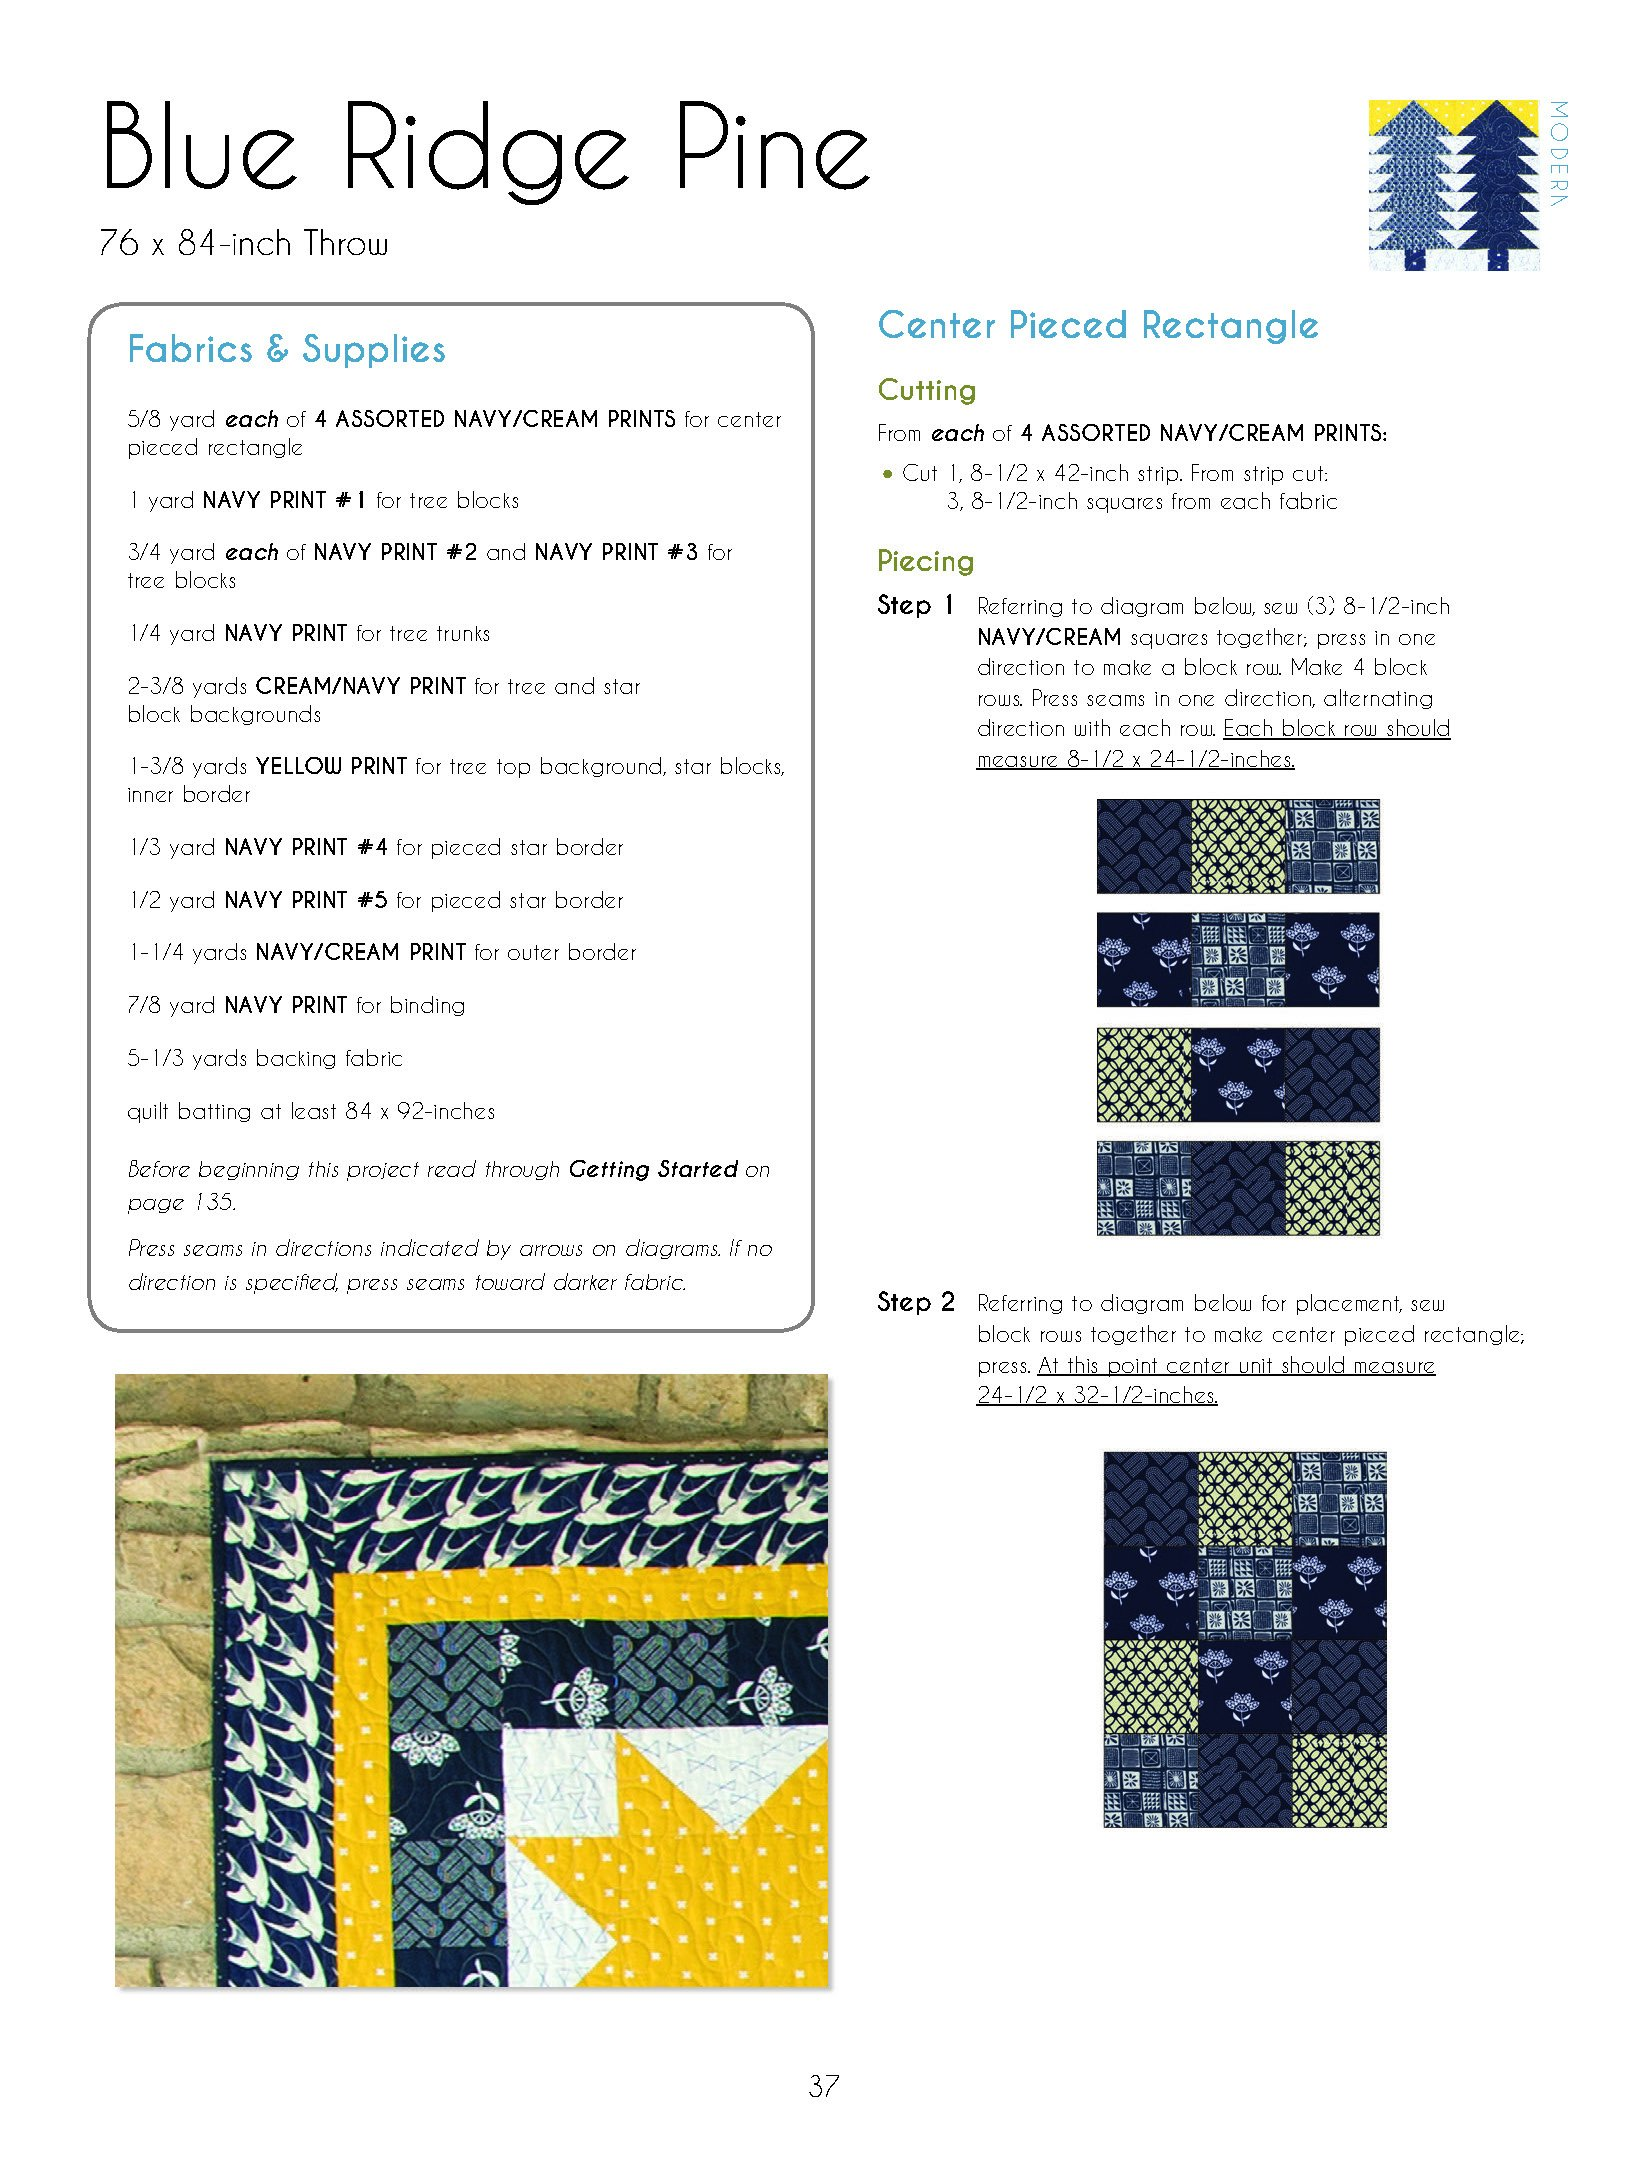 Thimbleberries quilts with a new attitude 23 tried and true quilt thimbleberries quilts with a new attitude 23 tried and true quilt designs made in both traditional and modern fabrics lynette jensen 9781935726920 nvjuhfo Choice Image